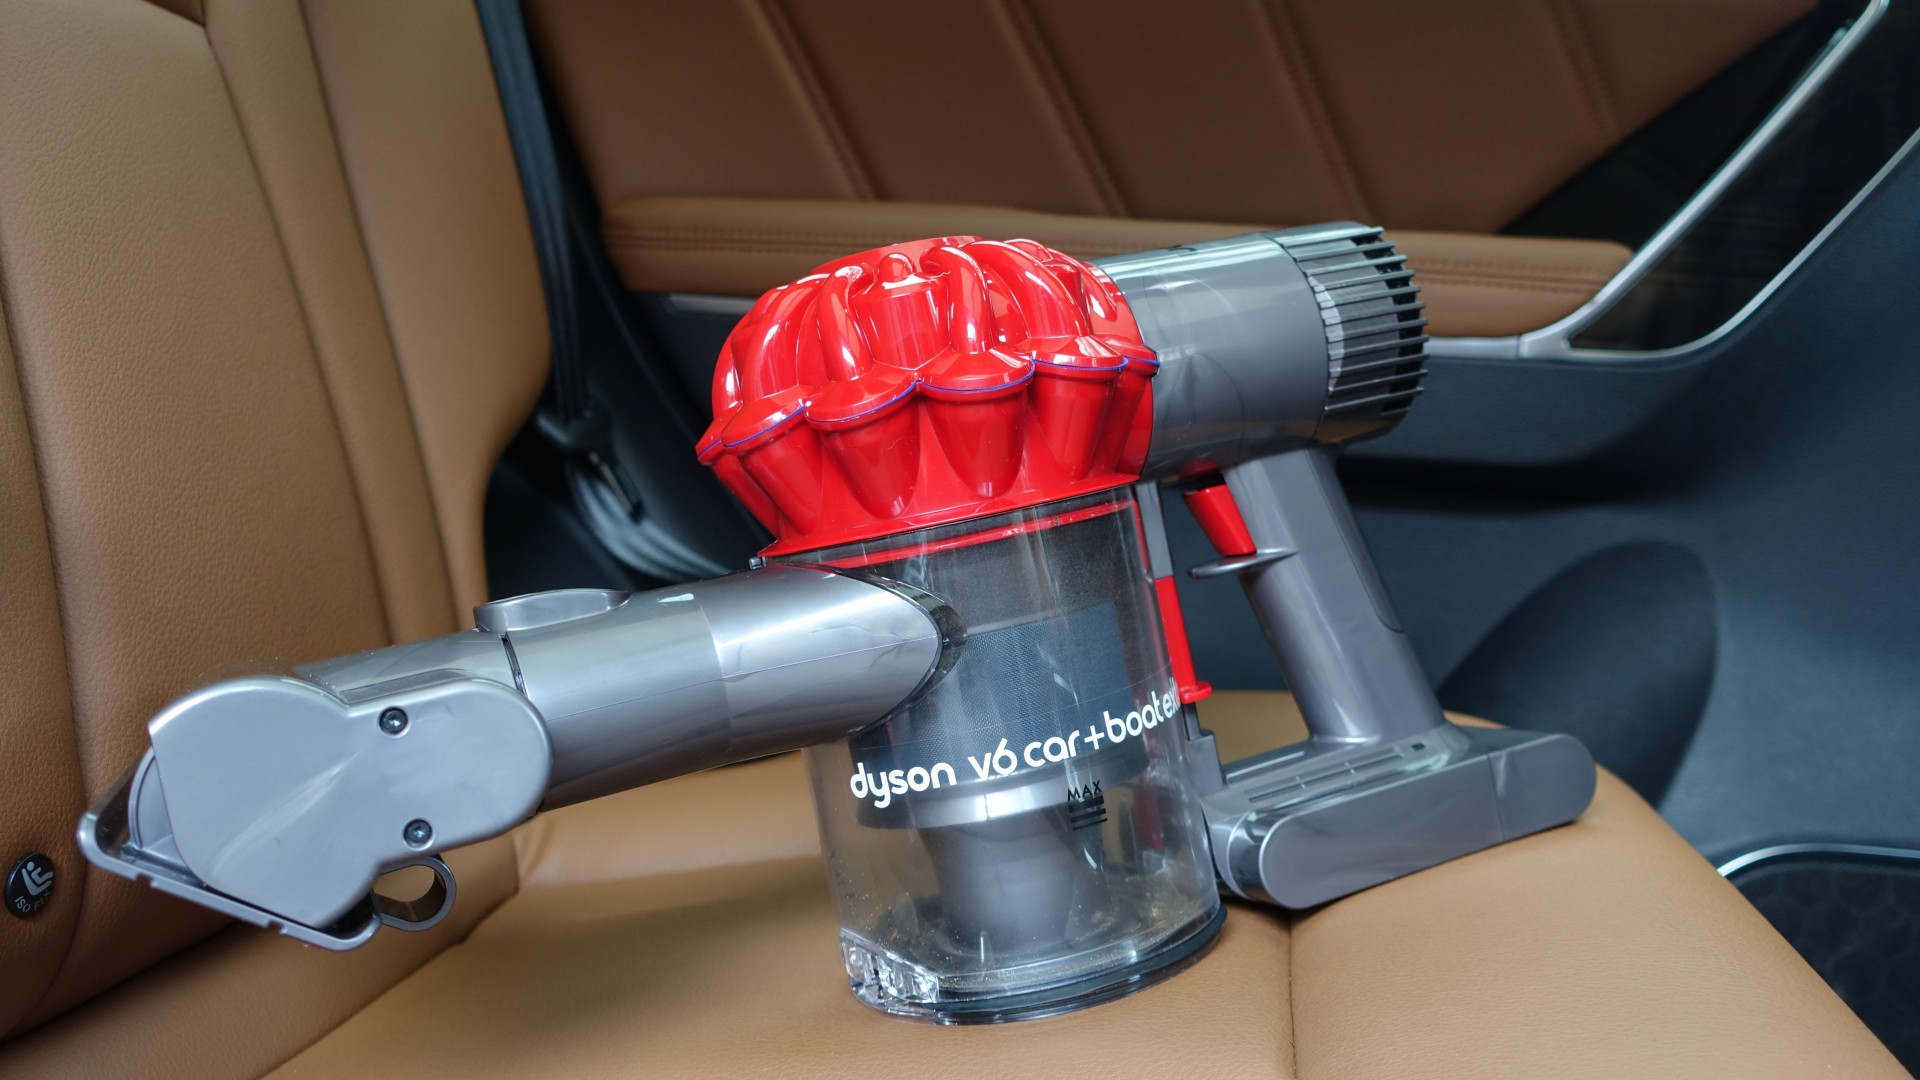 Dyson Goes Mobile Vacuum Designed Just For The Car Or